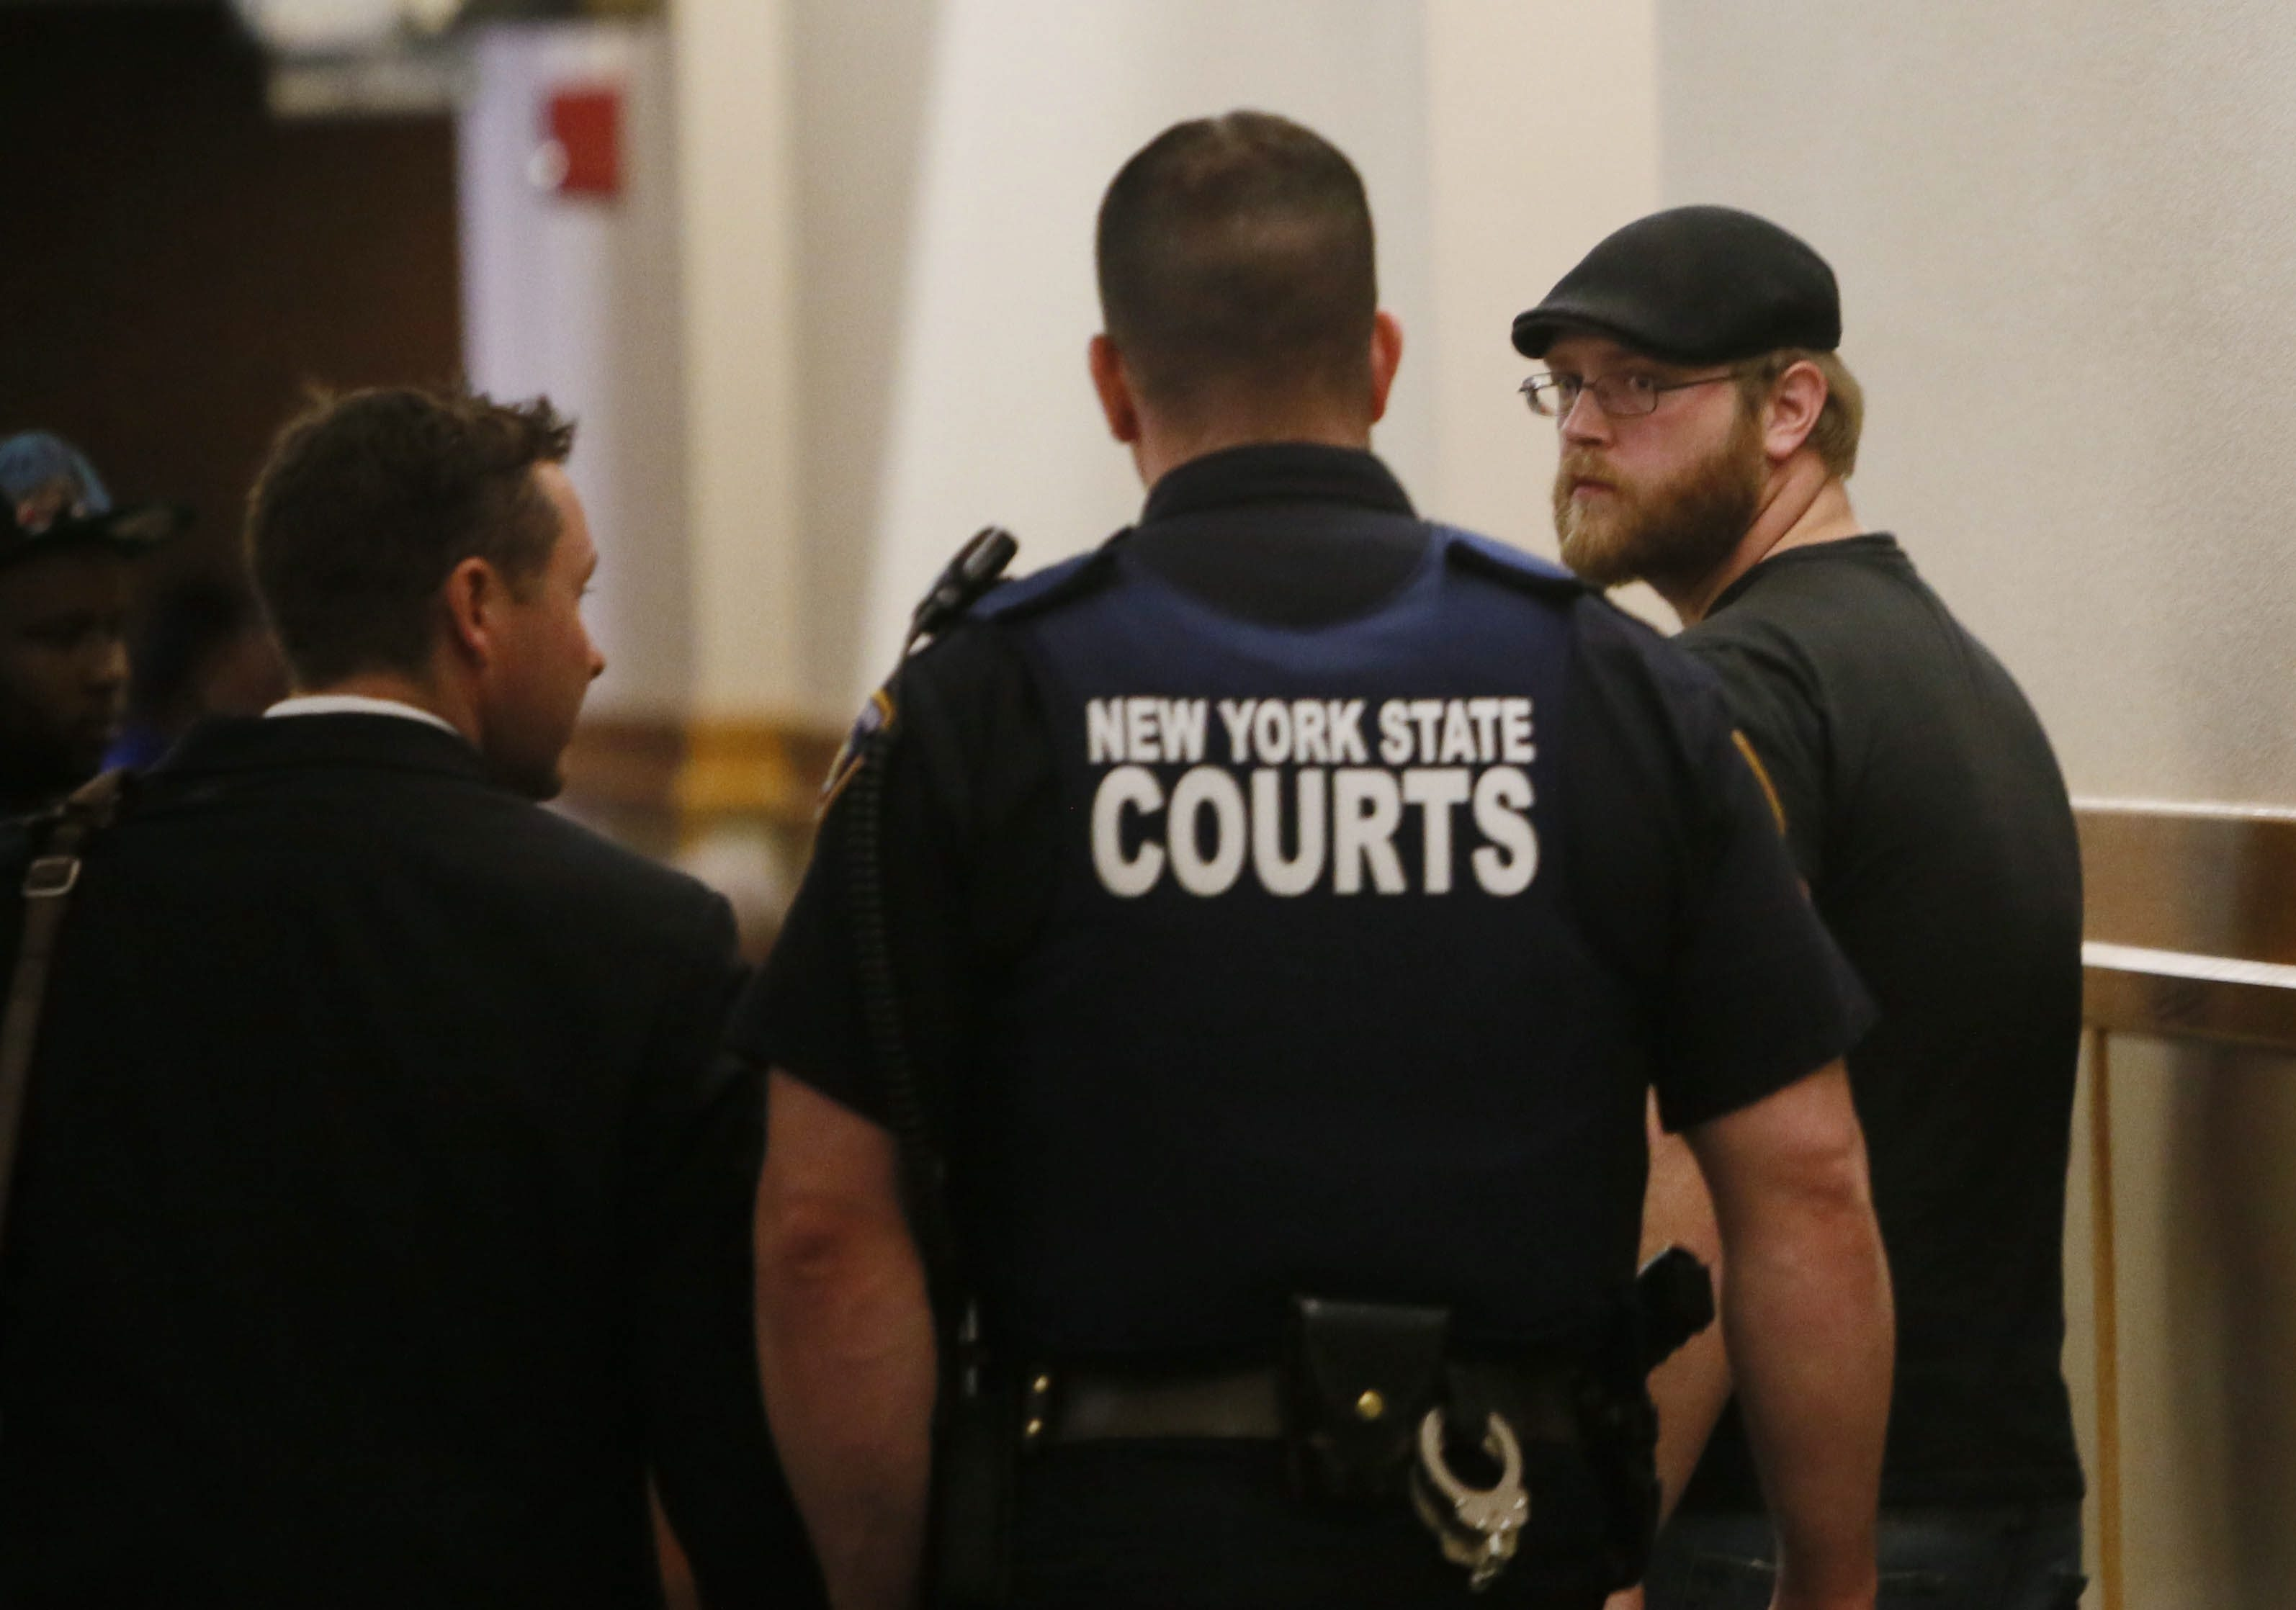 Donald Hall, right, who was arrested for trespassing while trying to get help for his friend who was nearly beaten to death at Molly's Pub, leaves Buffalo City Court with attorney Thomas P. Hurley, left, after the charges were dismissed today.